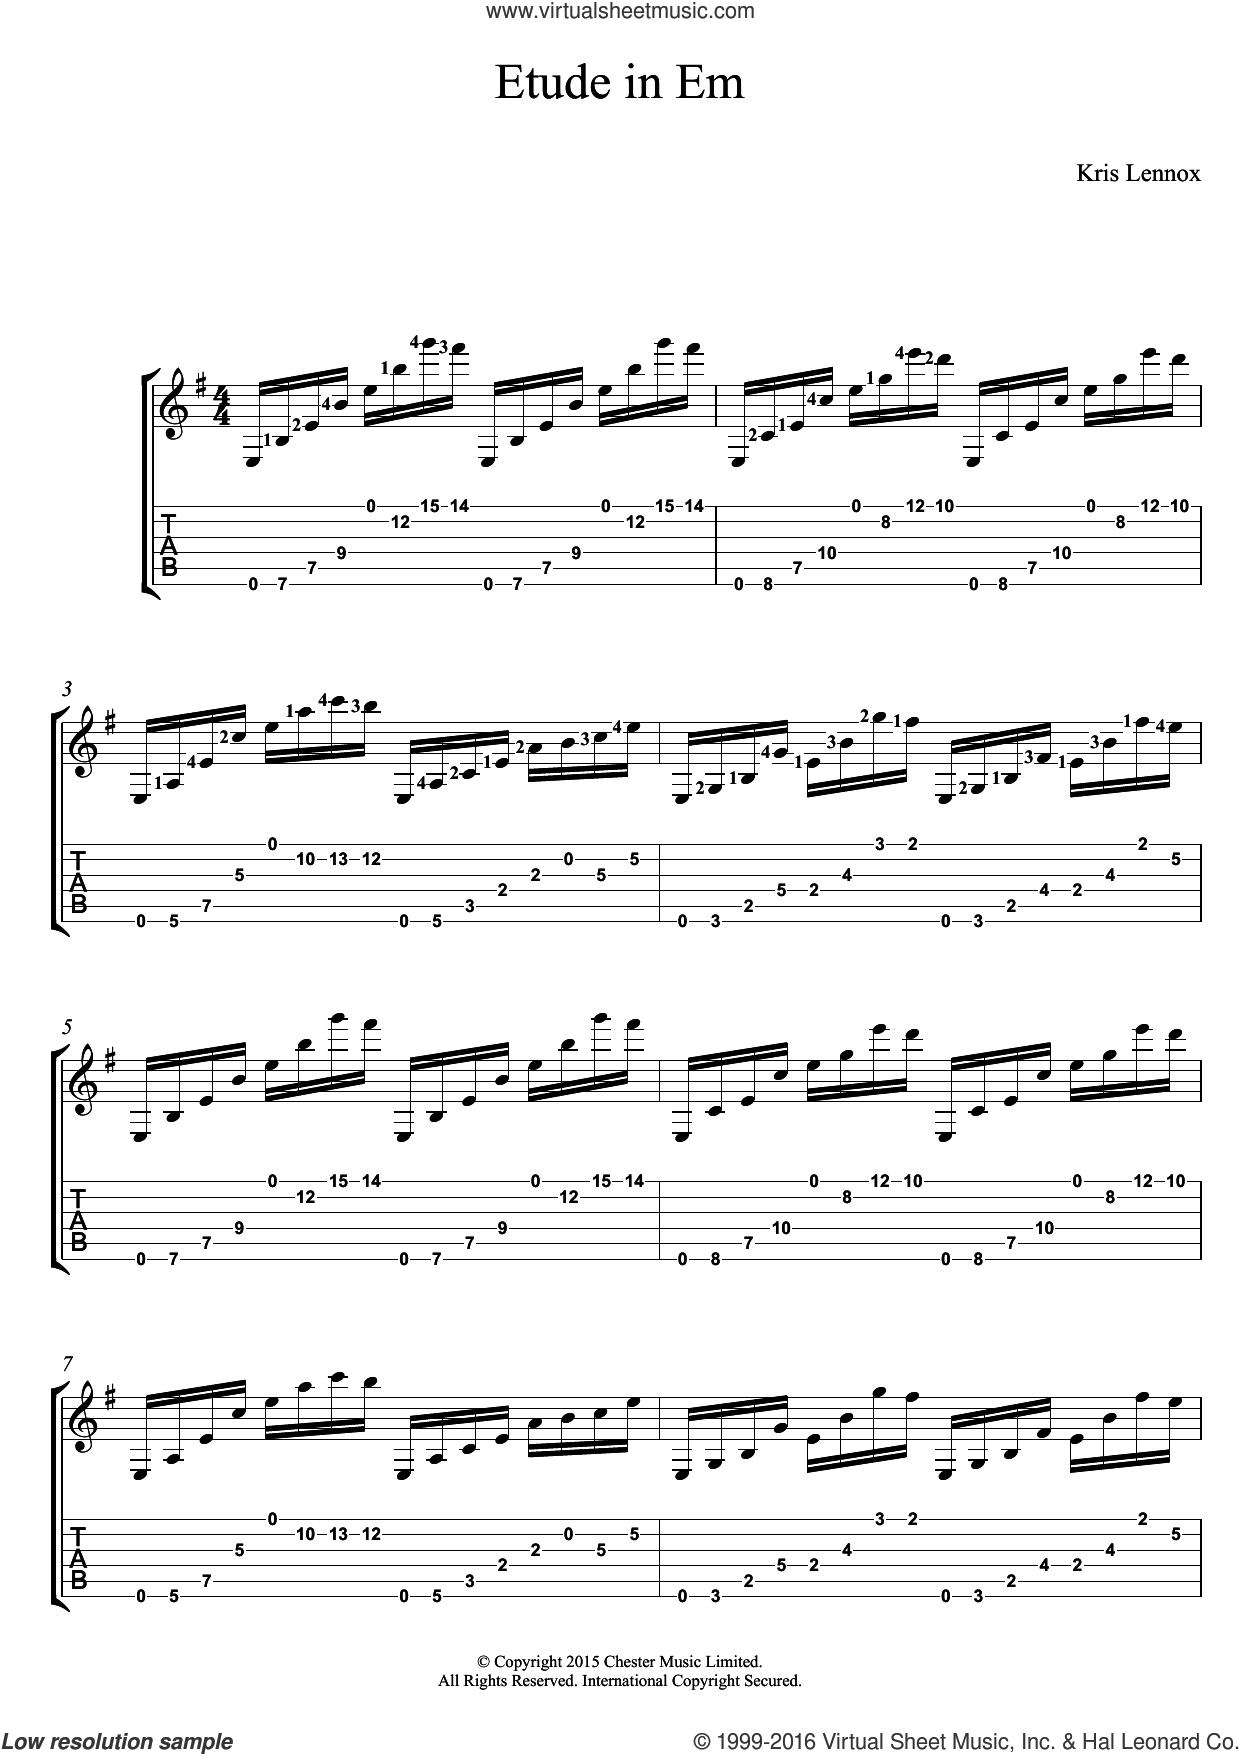 Etude In Em sheet music for guitar (tablature) by Kris Lennox